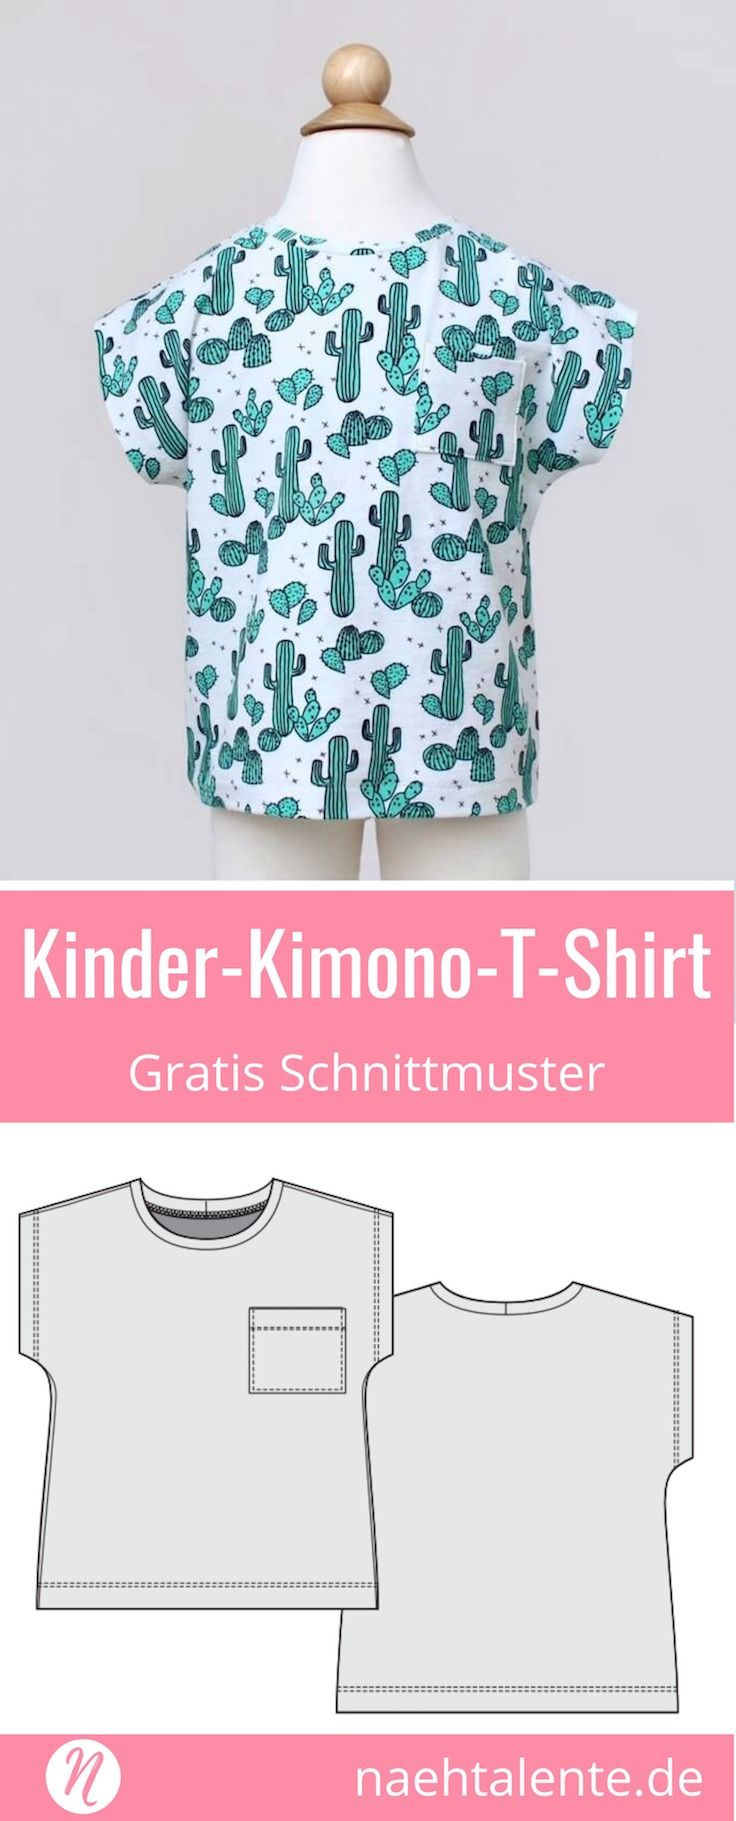 Kindershirt im Kimono-Stil - Freebook | Sewing patterns, Sewing ...